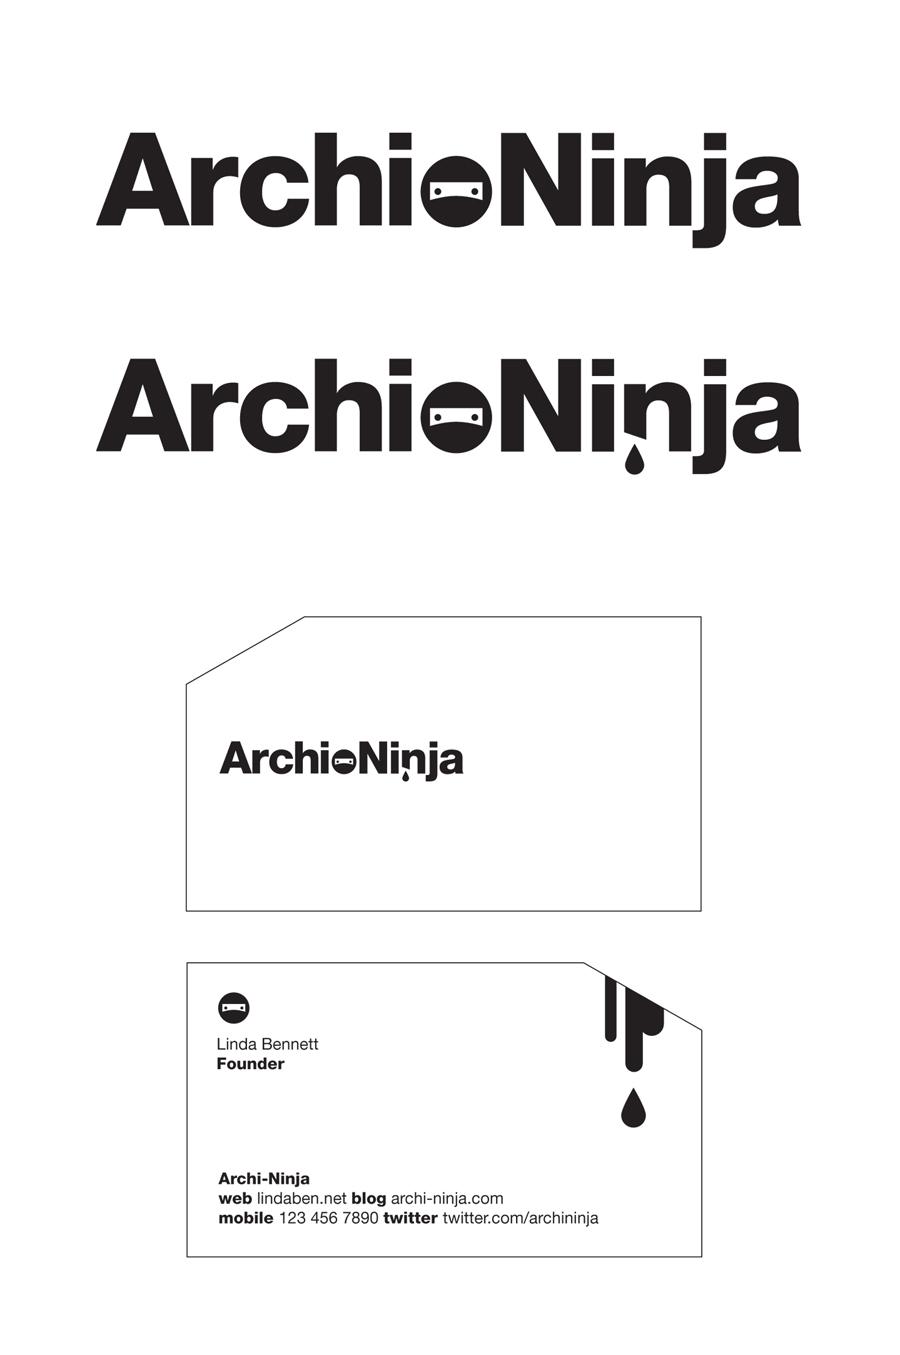 Logo Design by Simple Co. for Logo Design Contest for Archi-Ninja Design/Architecture Blog - Design #13955